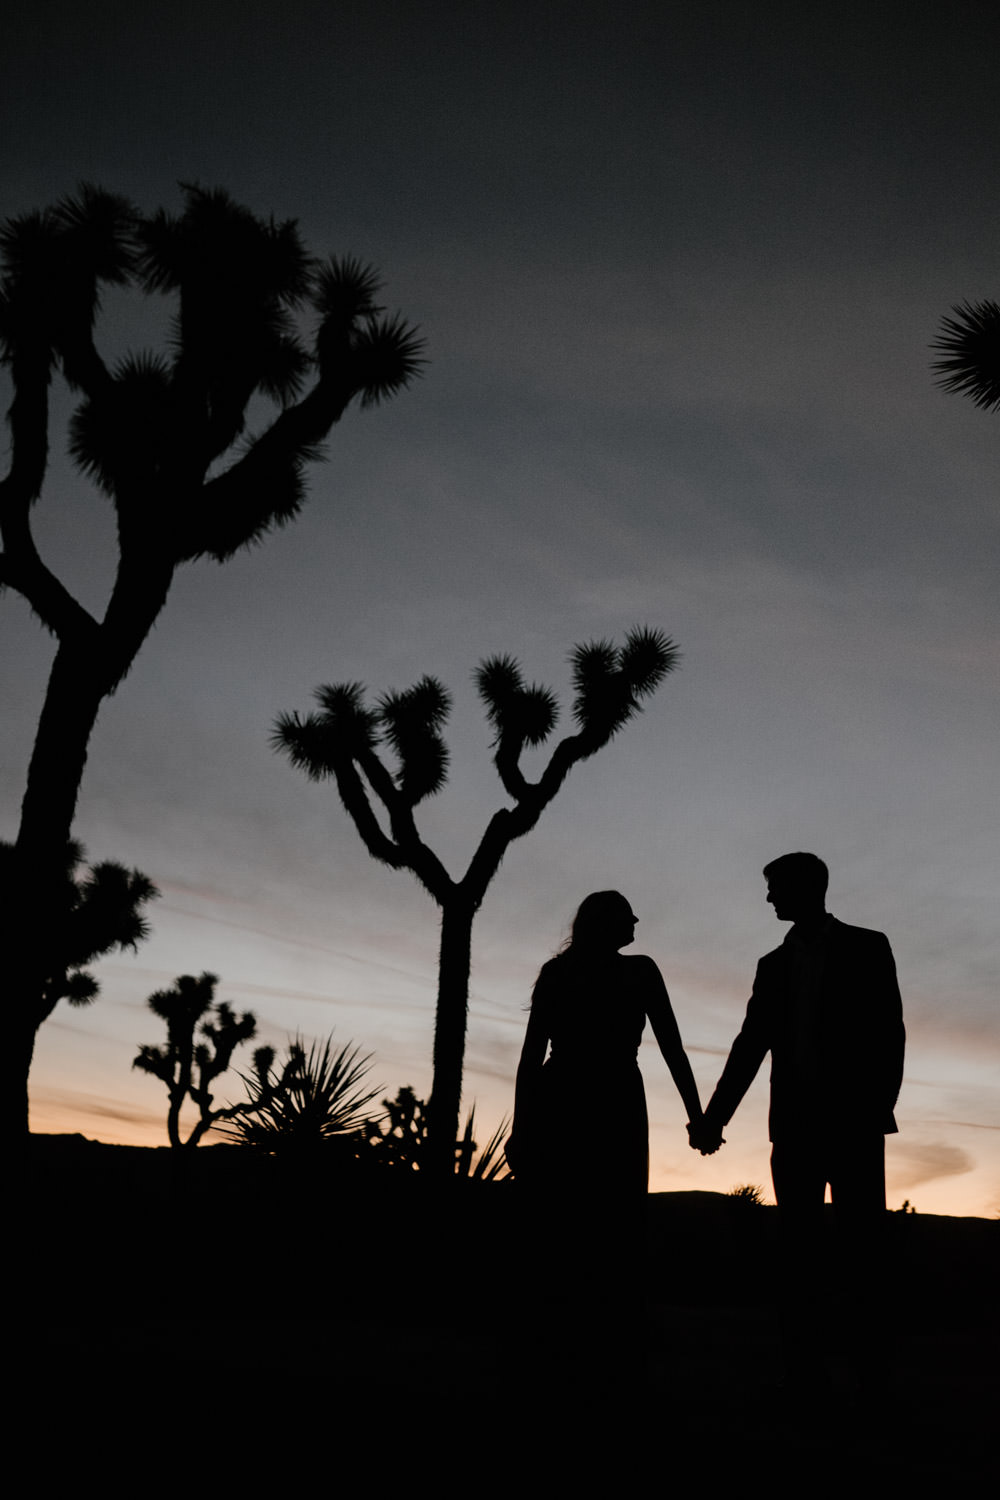 joshua tree + palm springs engagement just the sky